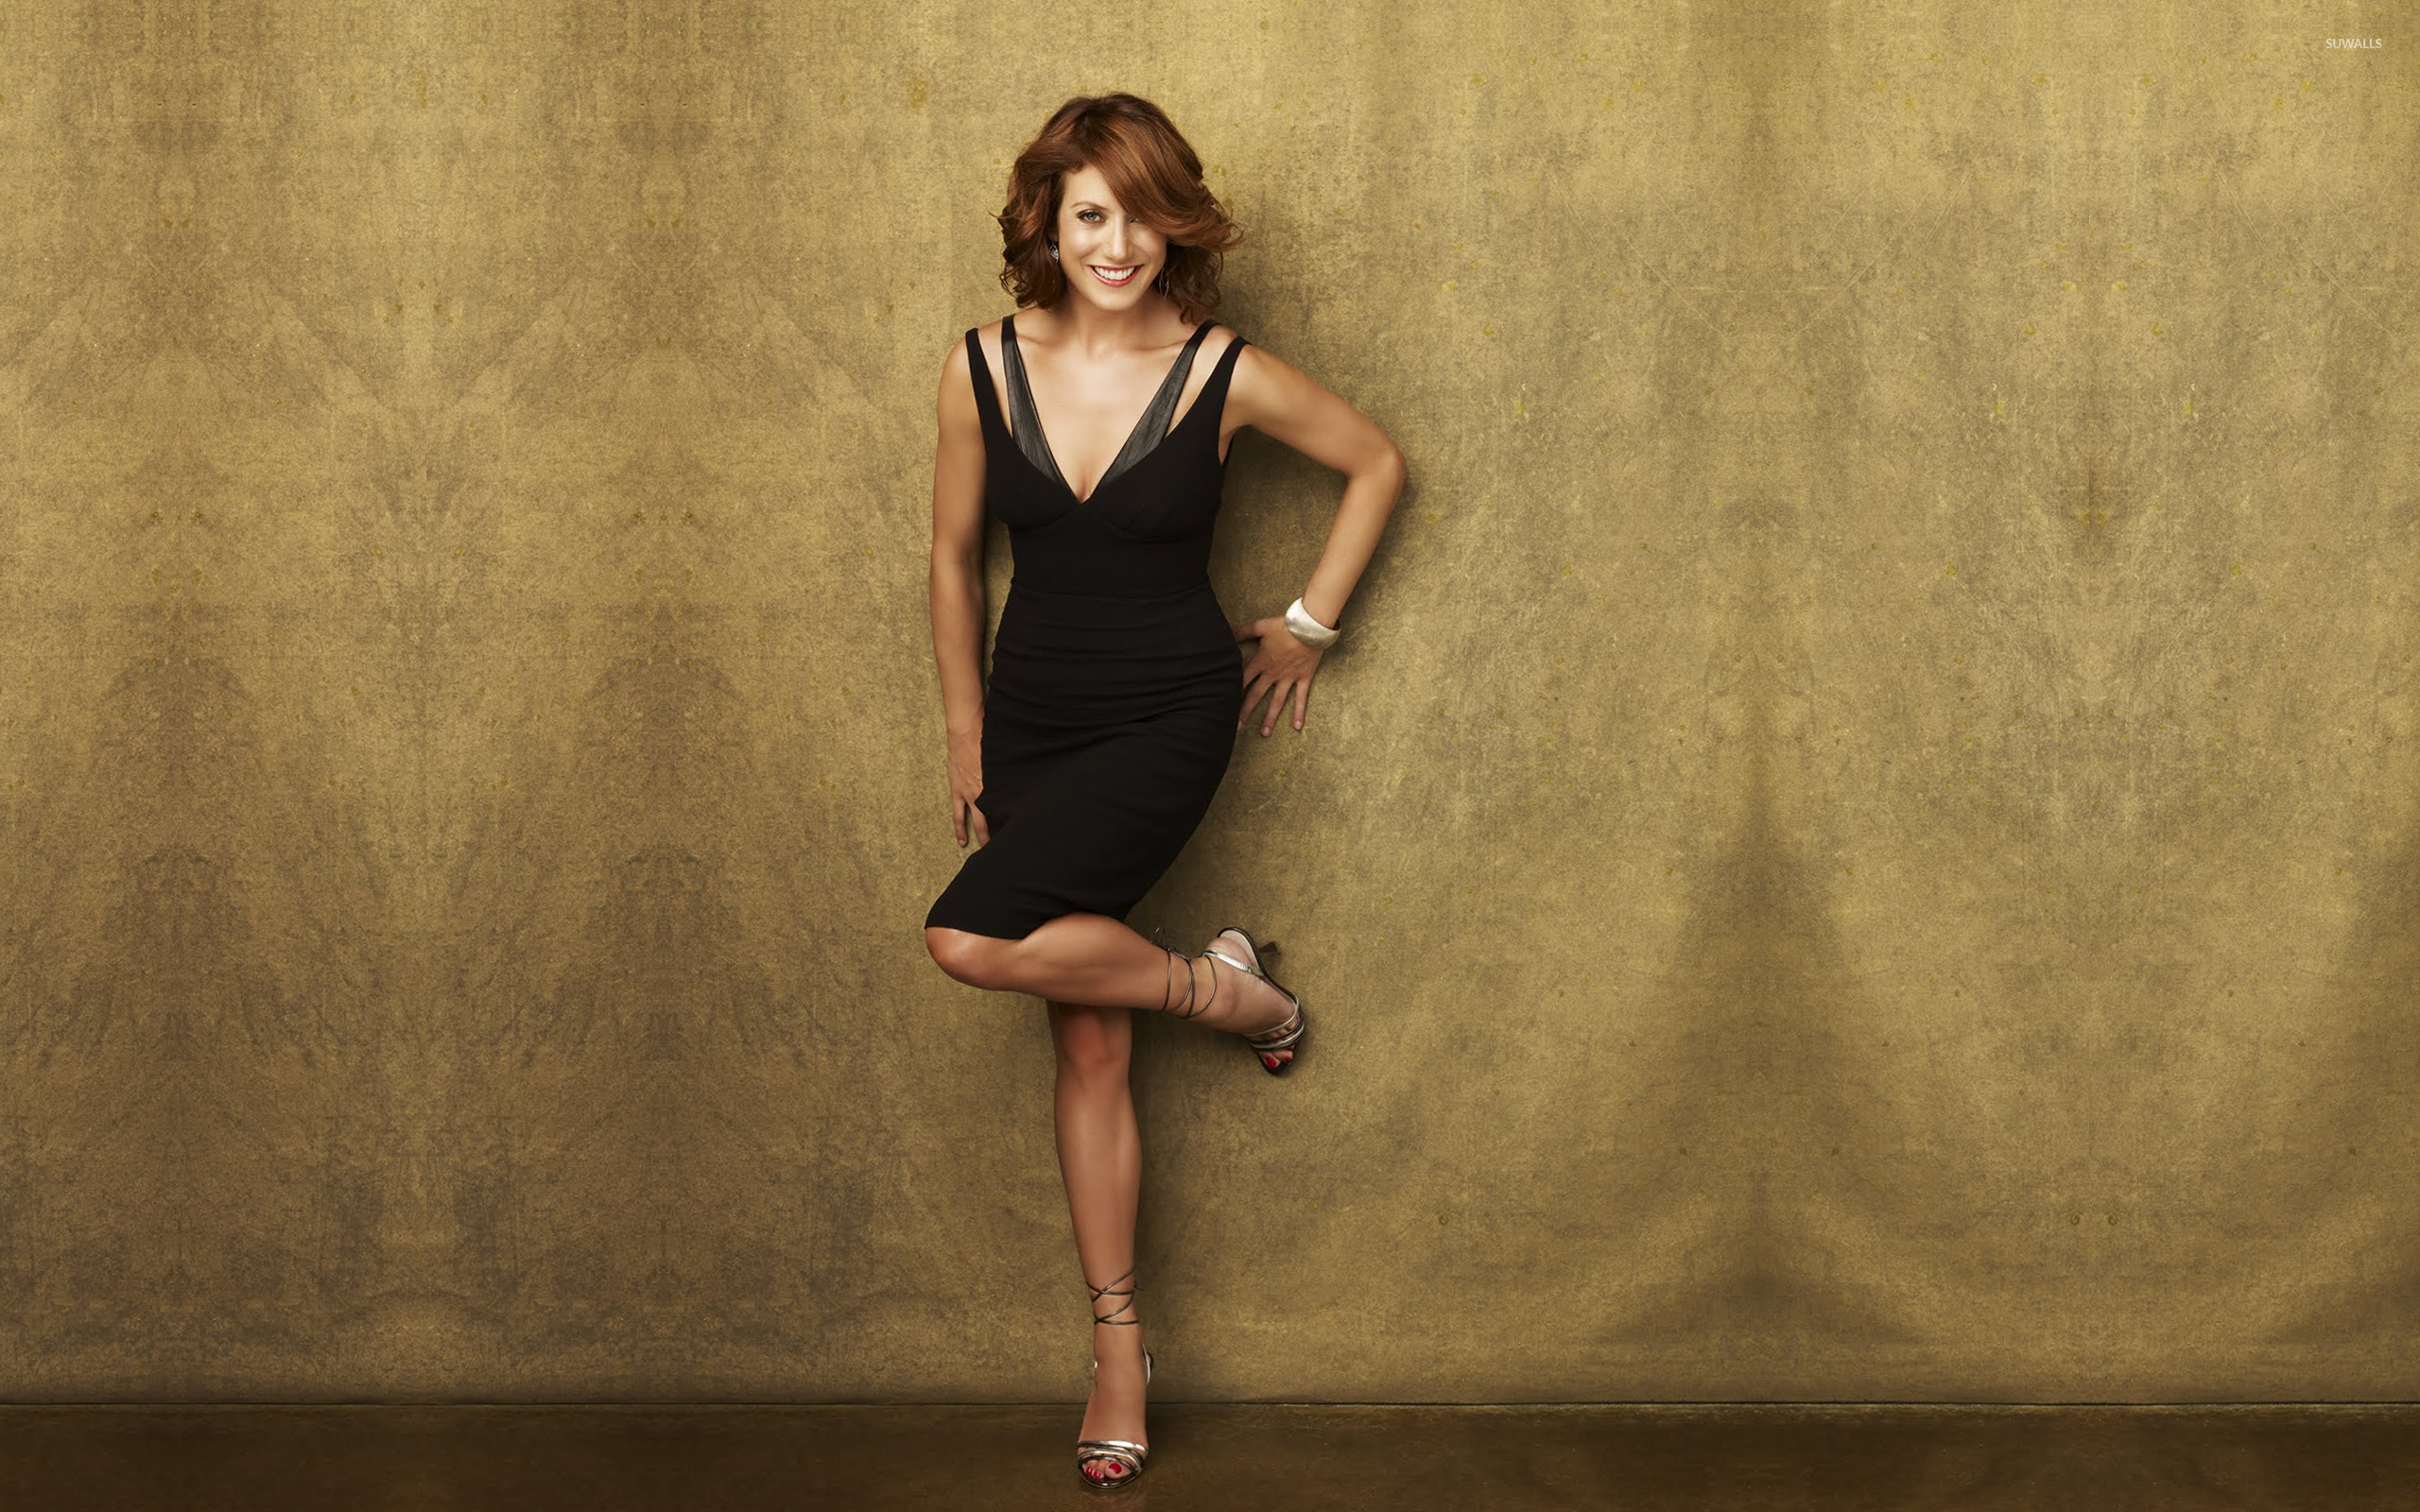 2560x1600 - Kate Walsh Wallpapers 5